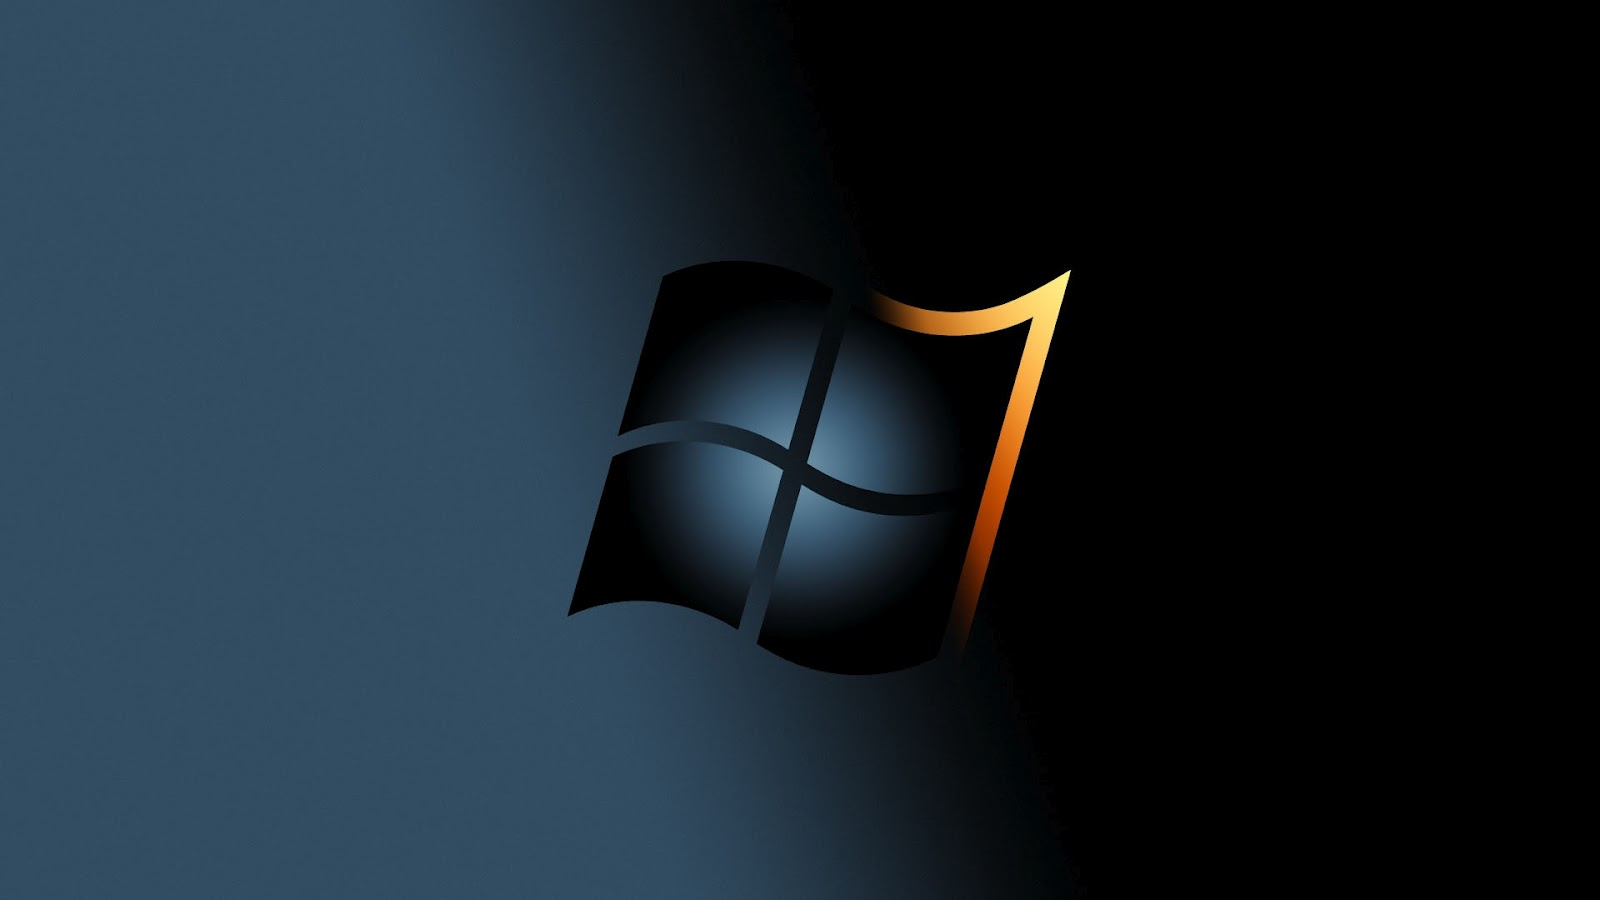 Hd wallpapers hd wallpapers of windows 7 for Best quality windows